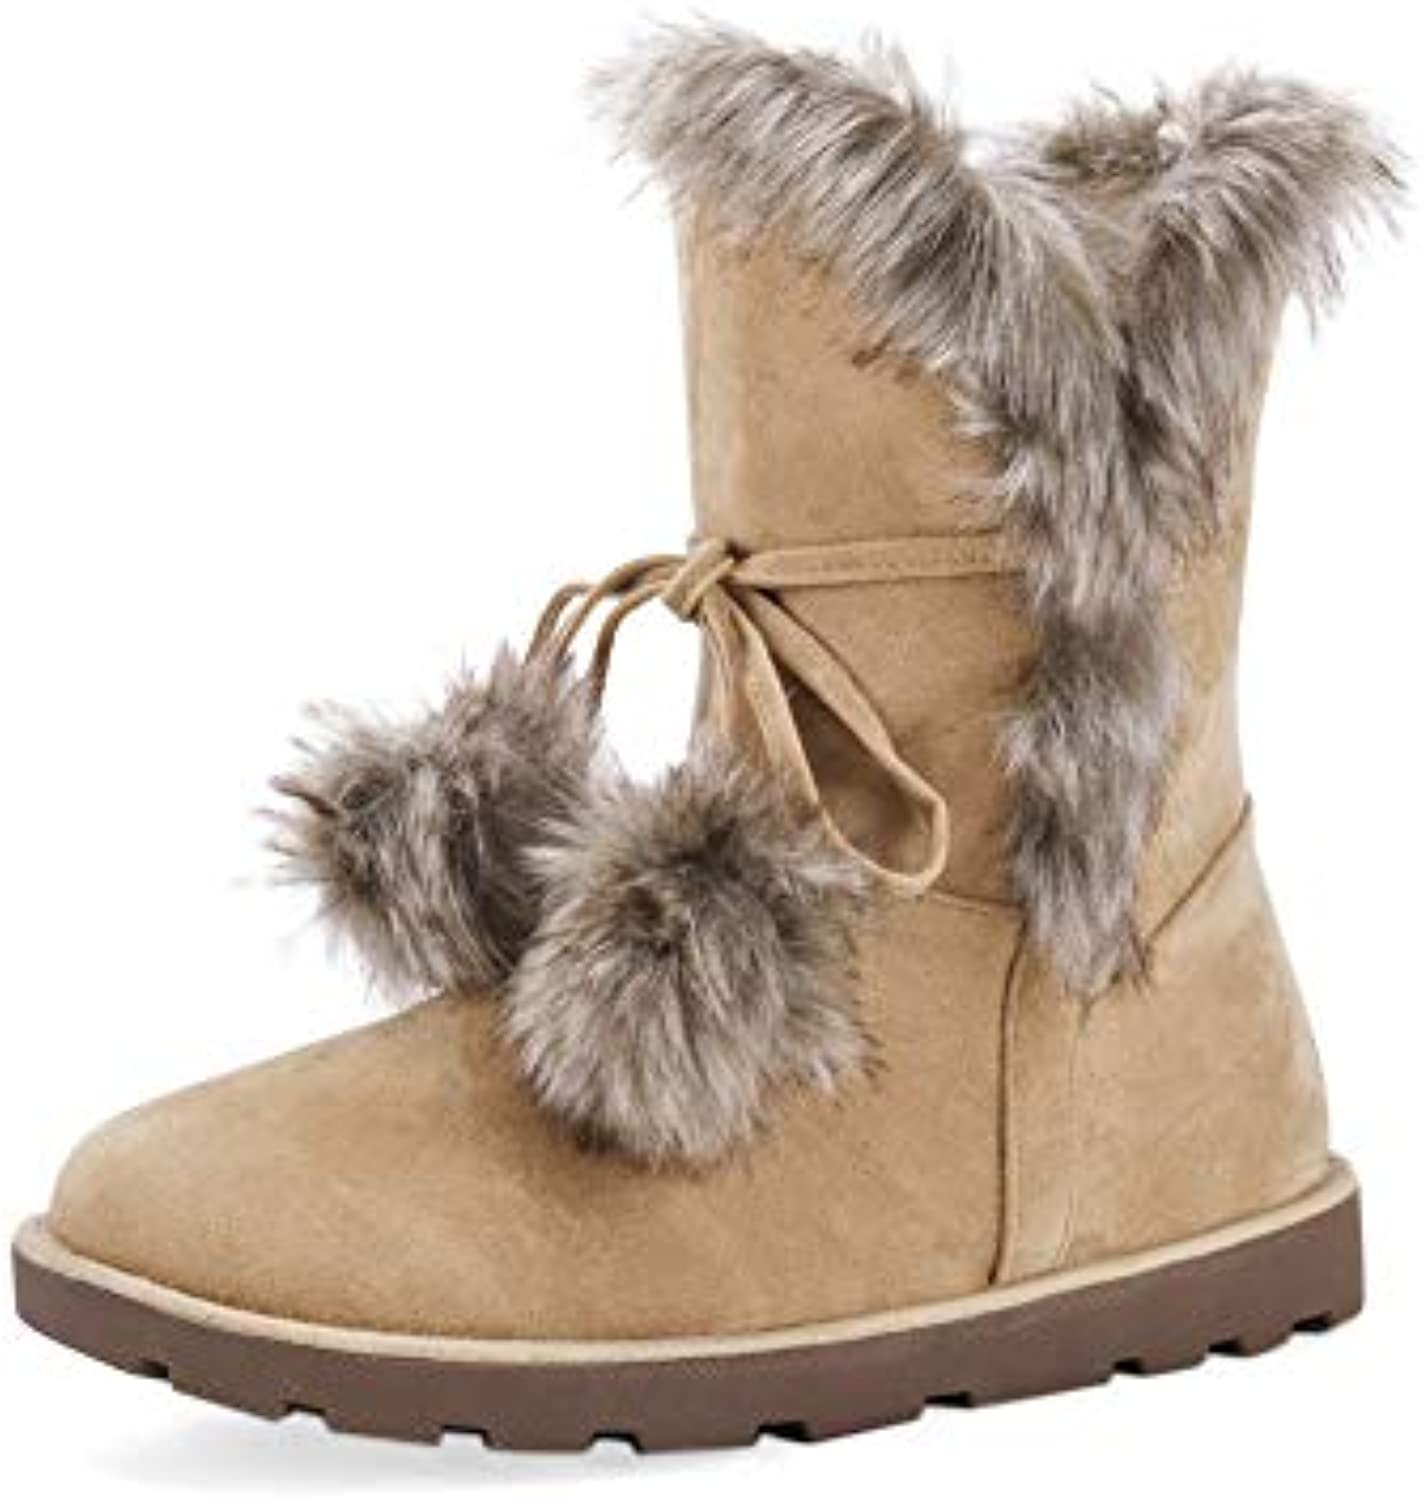 fa235a939461 NEOKER Winter Ankle Snow Boots Suede Womens Warm Lined 25423 Faux Fur Lined  Suede Leather Lightweight Casual Shoes Slip On Ladies.